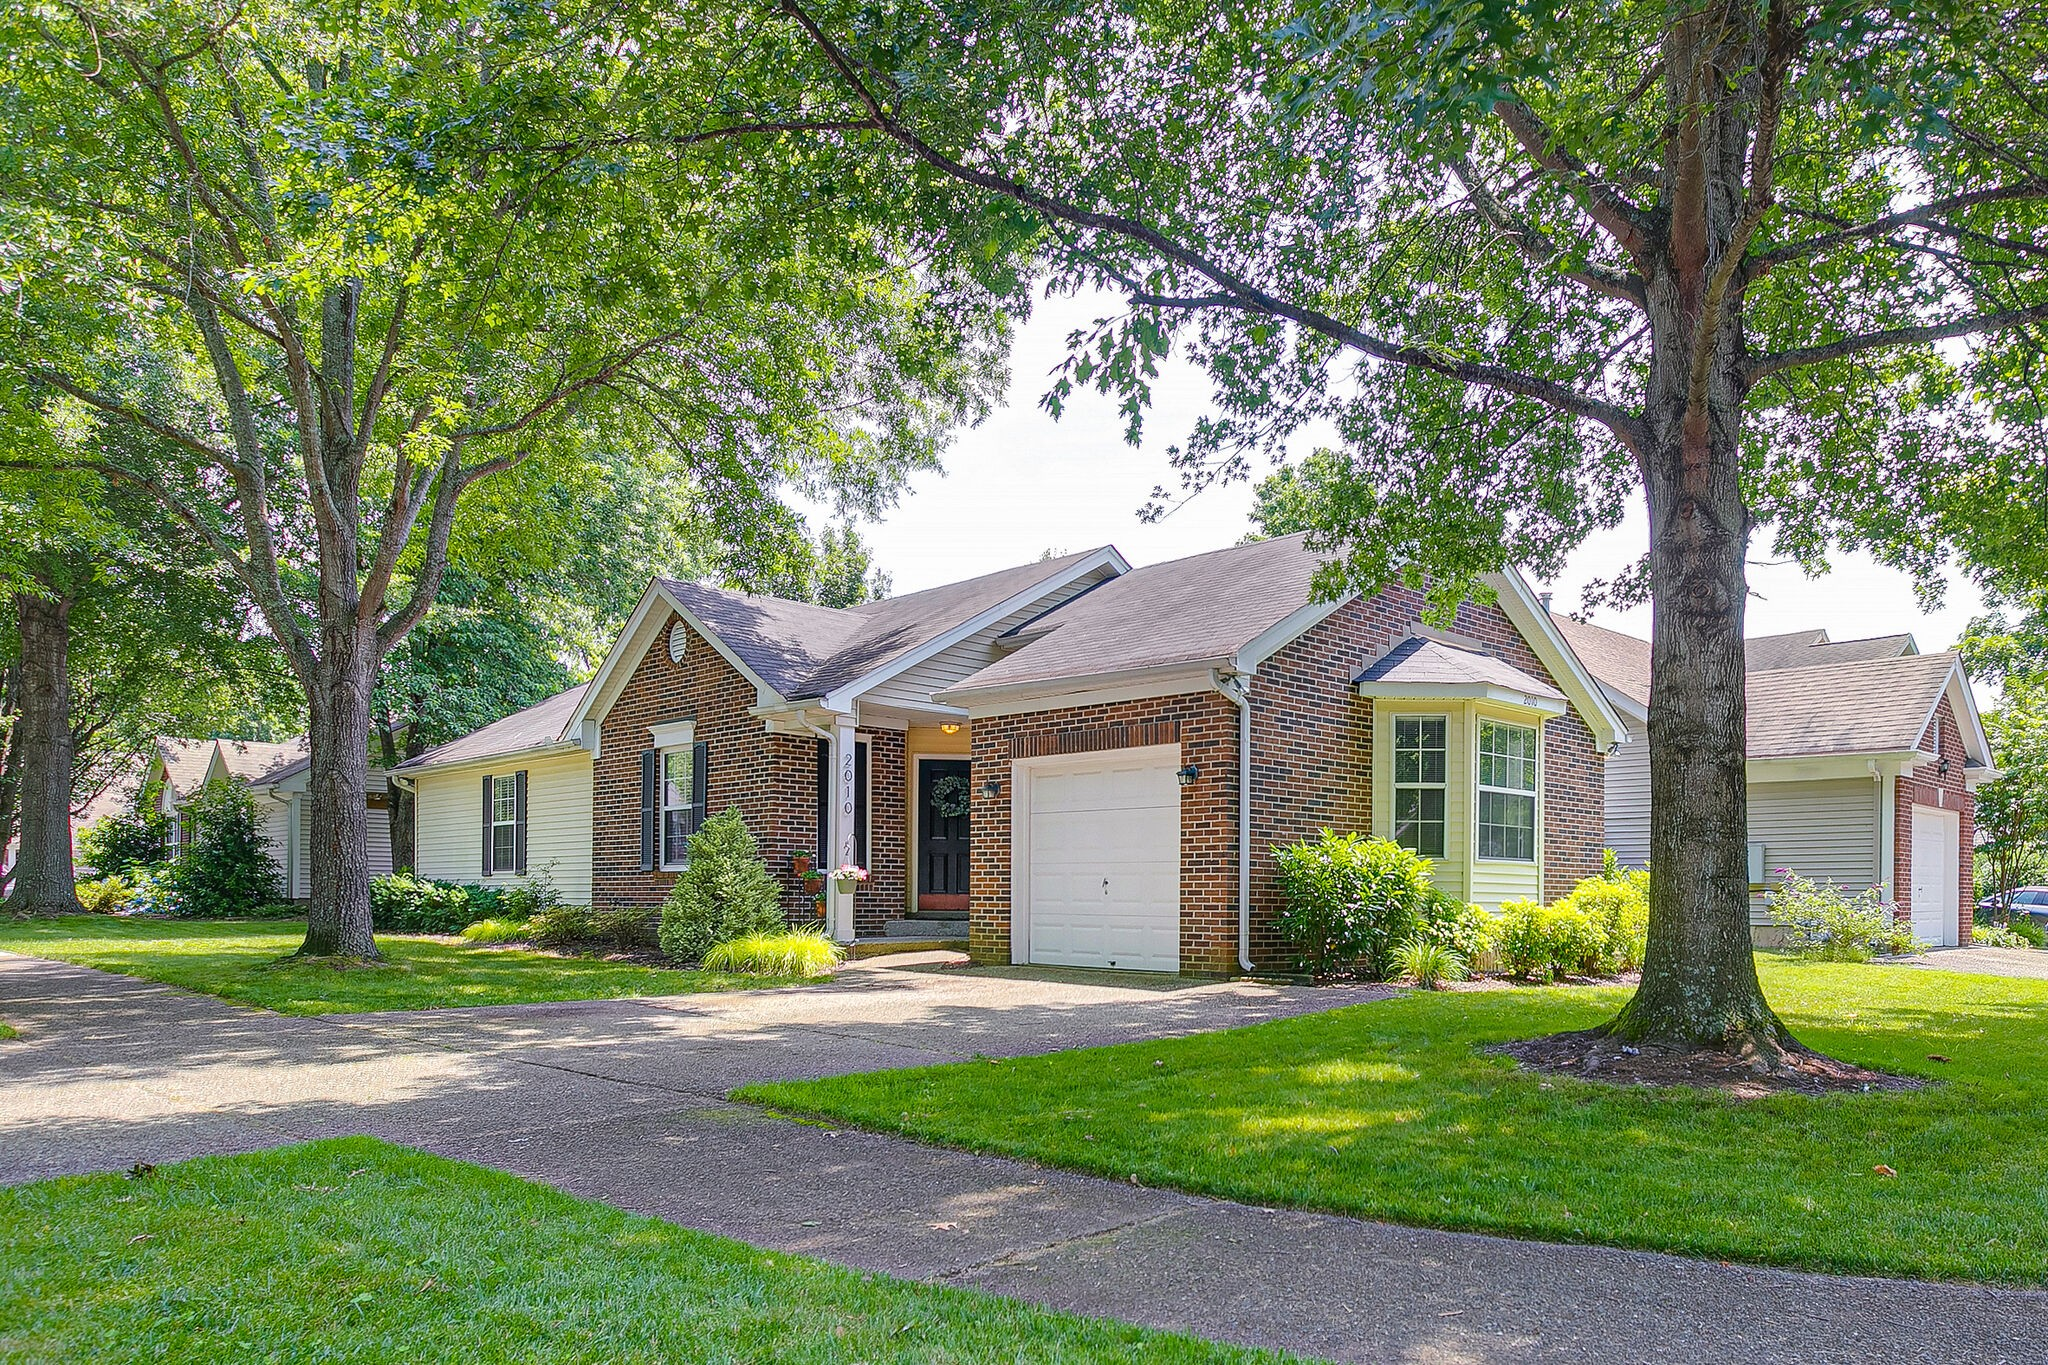 Franklin charmer in the very sought after neighborhood Fieldstone Farms! One level living with an updated kitchen with granite and stainless steel appliances. Walk to restaurants or go to the clubhouse and enjoy the pool, tennis, or fitness center. Showings begin Thursday, June 17 at 10am - Sunday, June 20 at 4pm. Offers due by 12pm Monday June 21th.